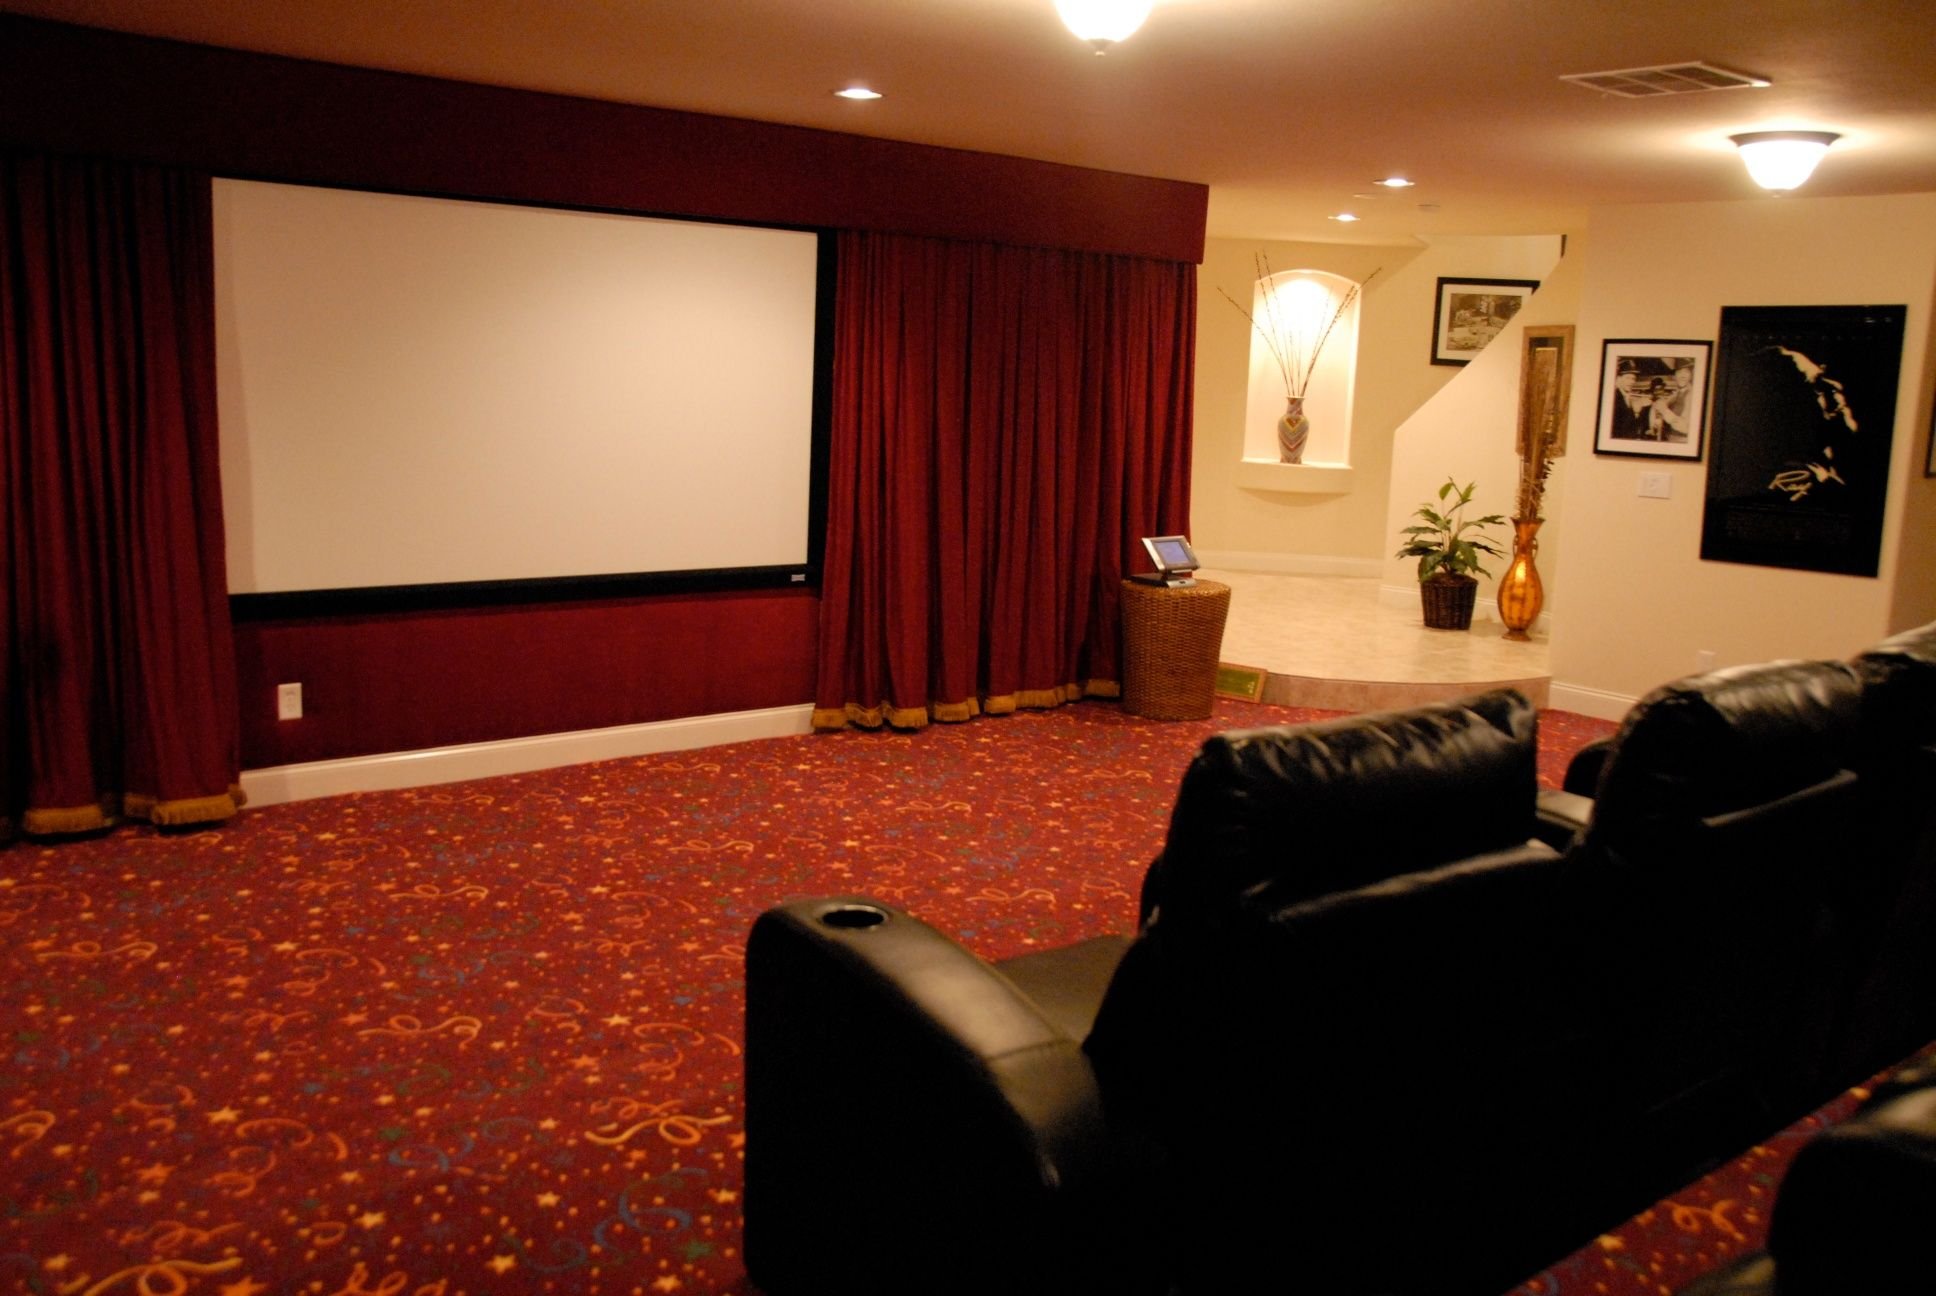 Movie Rooms With Curtains Decorations Sophisticated Home Movie